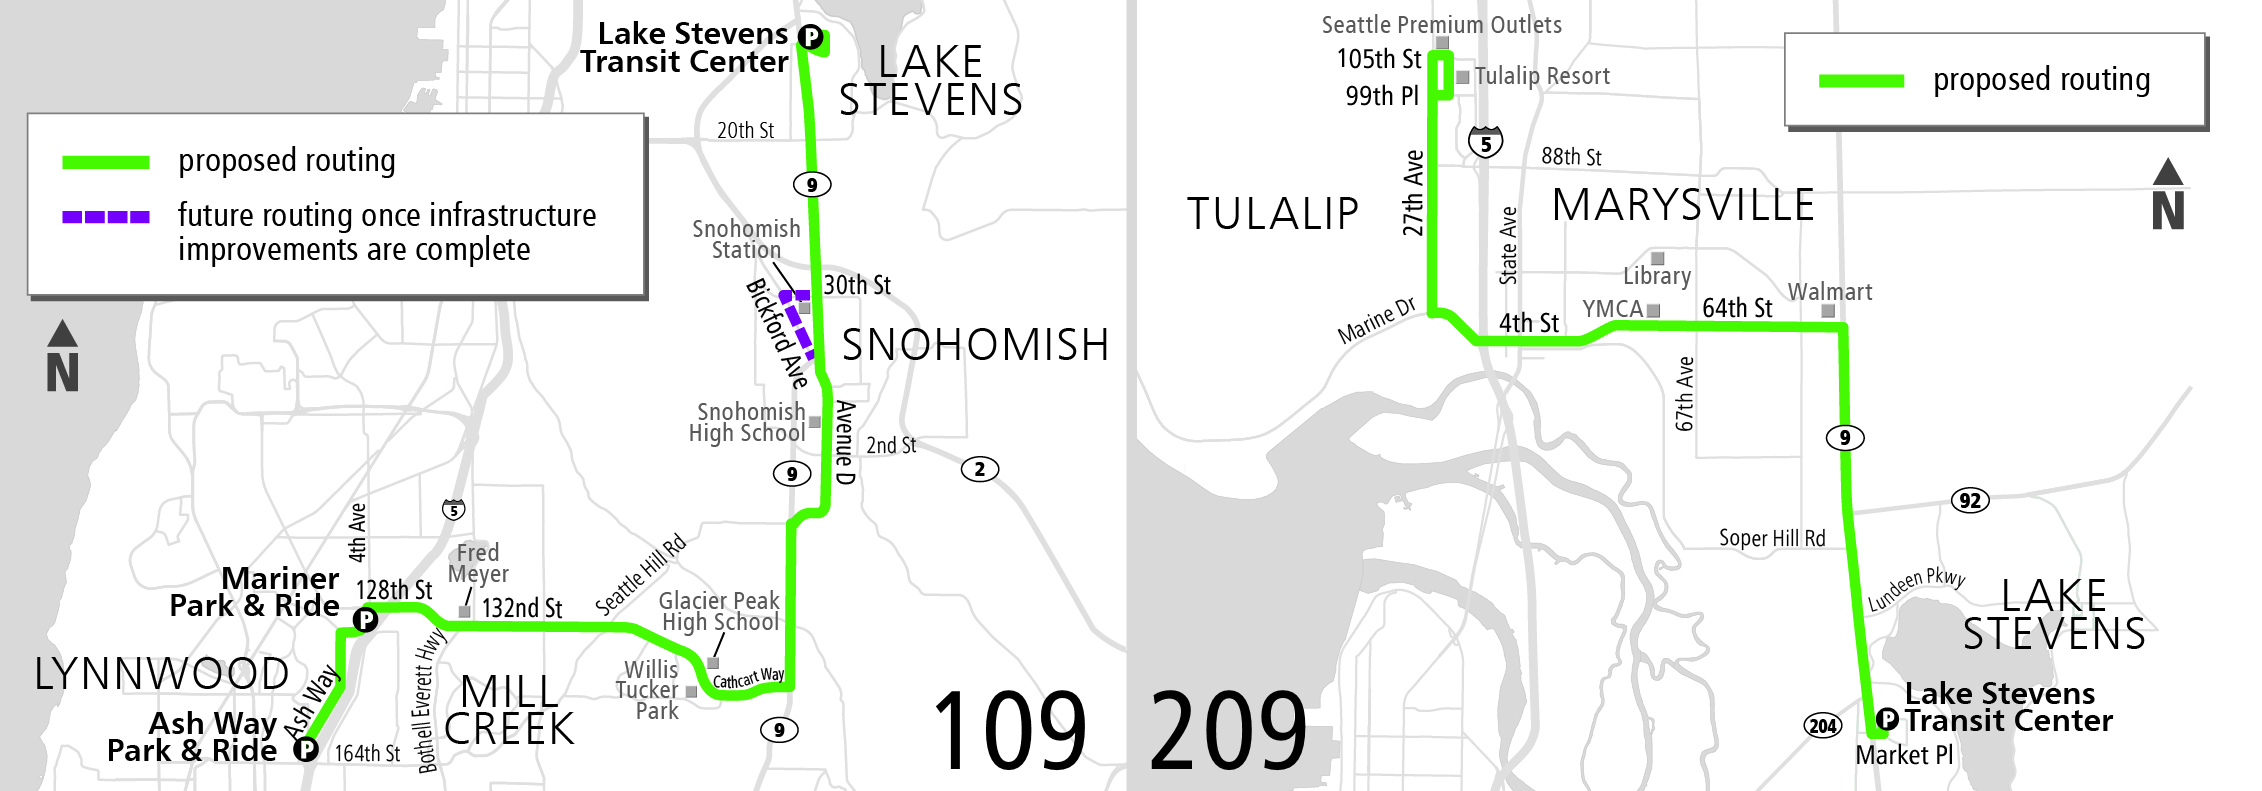 Proposed routes 109 (left) and 209 (right)